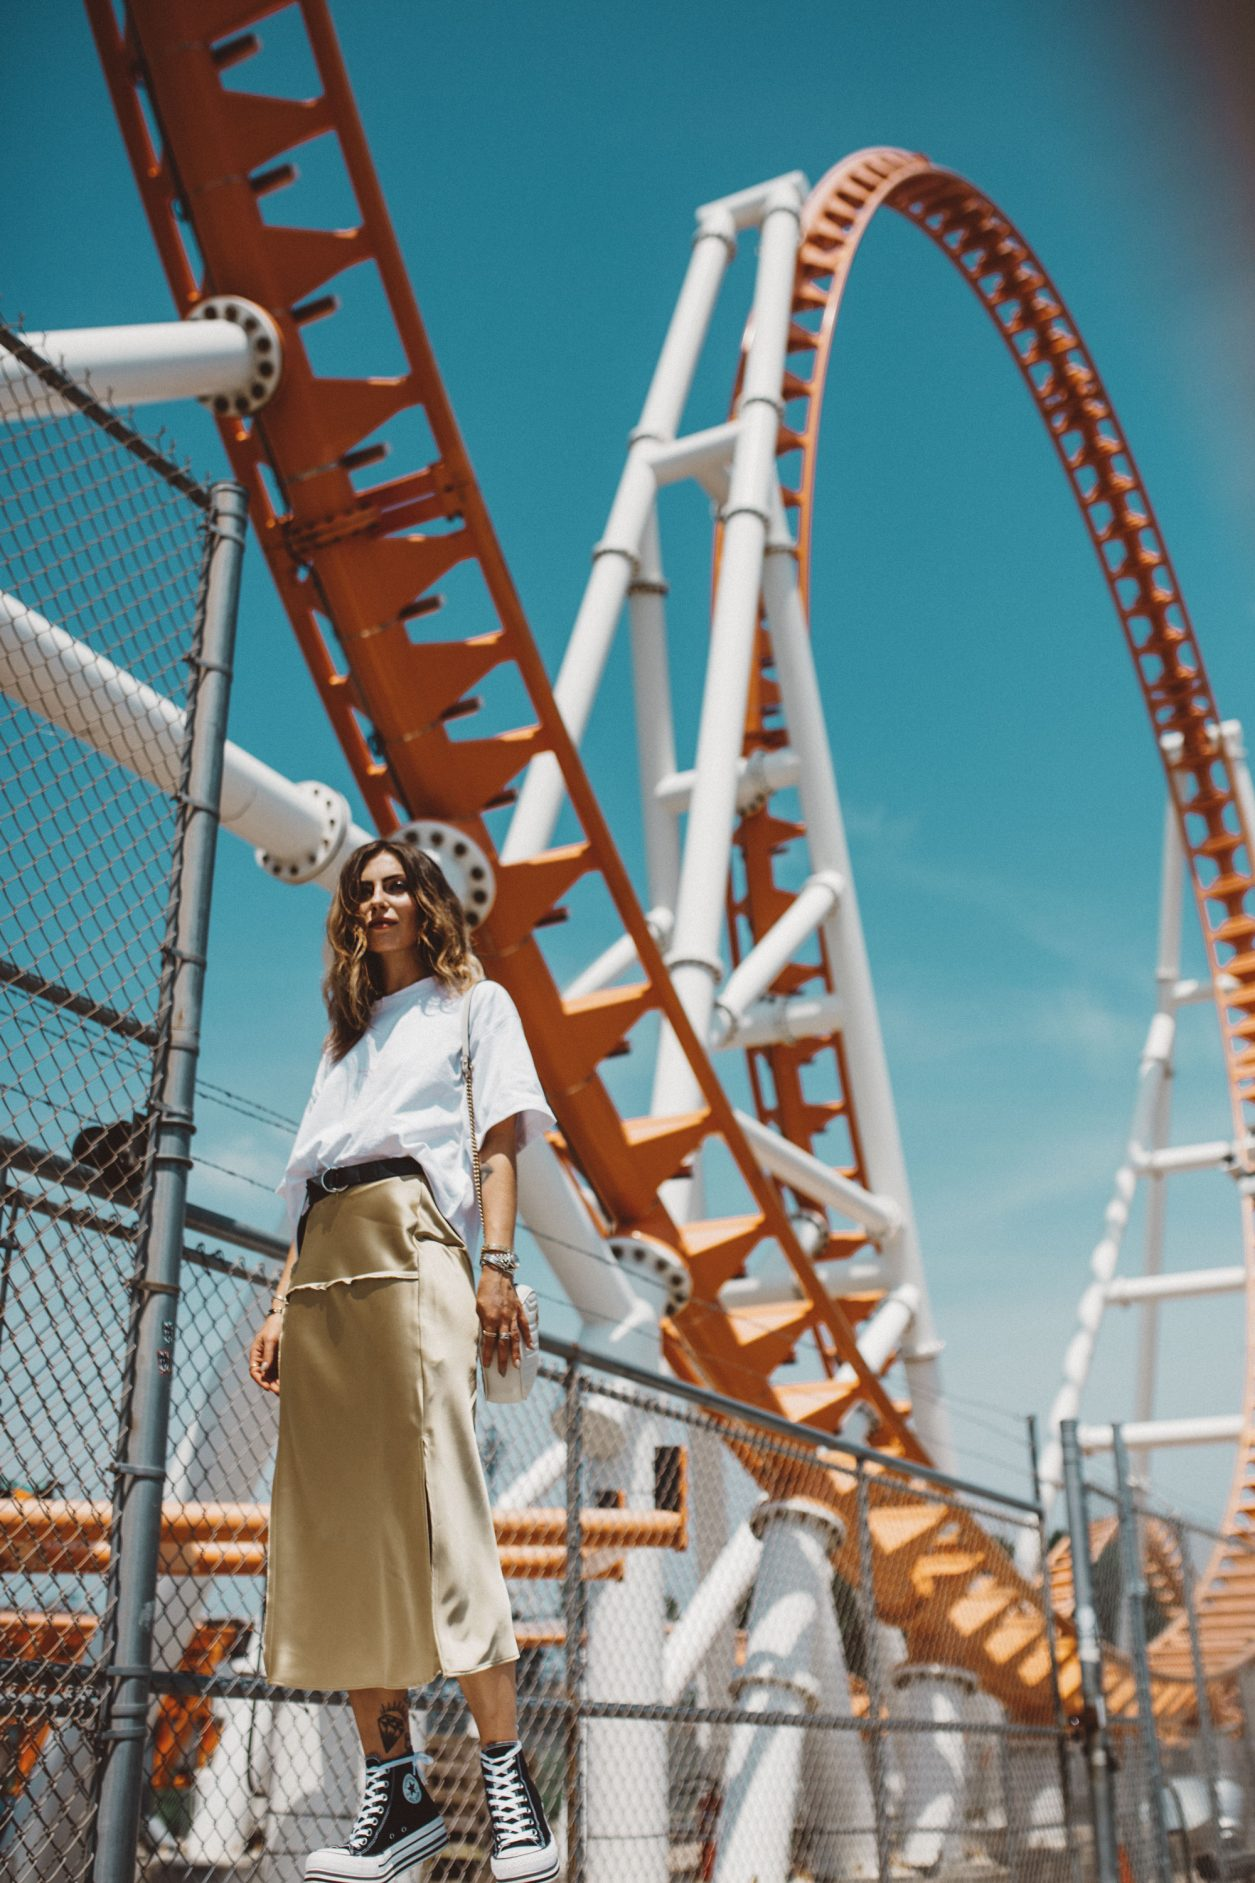 Coney Island | Summer | New York City | American Style | Ice Cream | Editorial